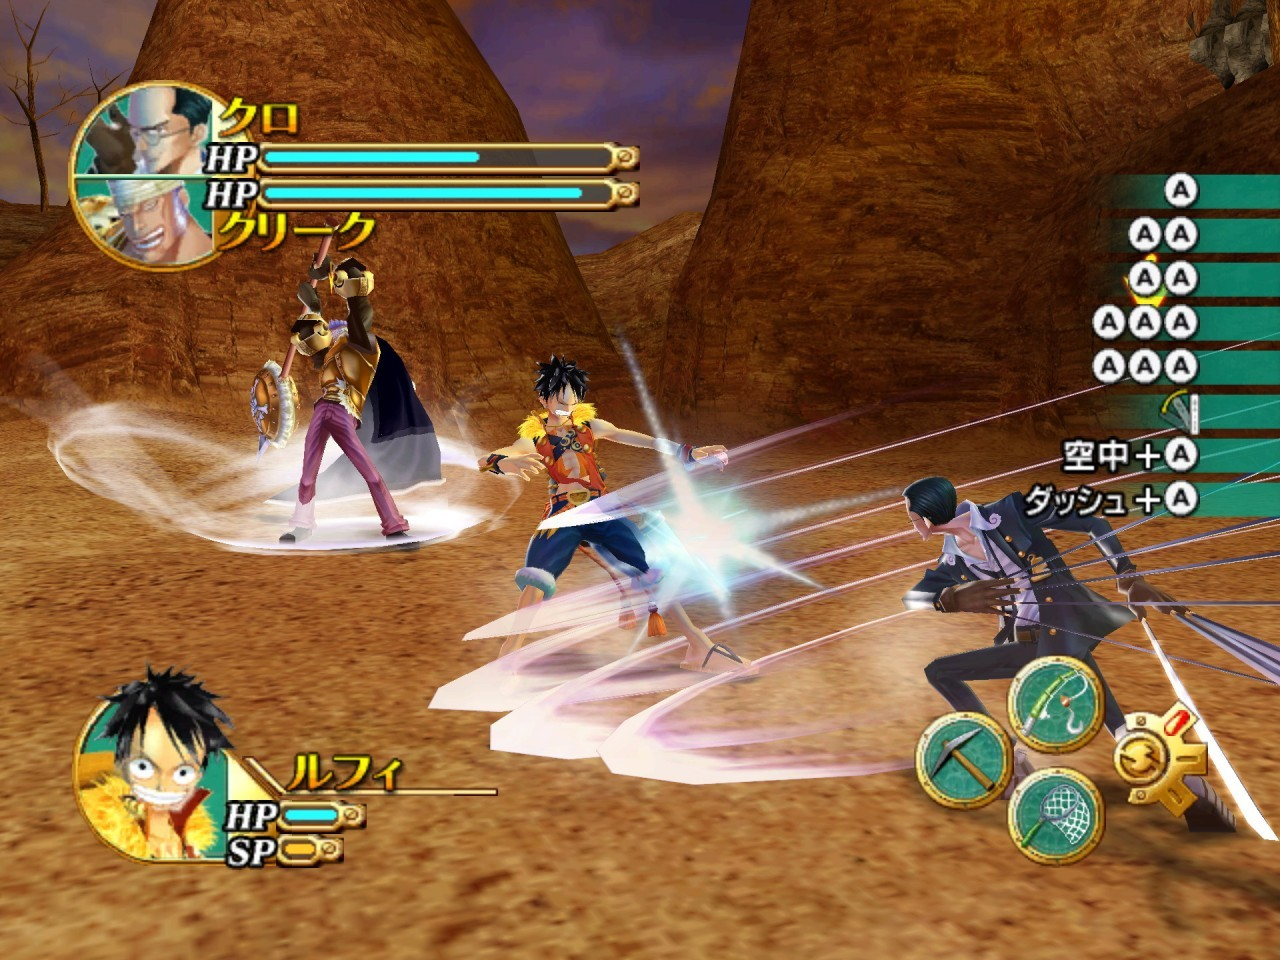 [Wii 3DS] One Piece Unlimited Cruise